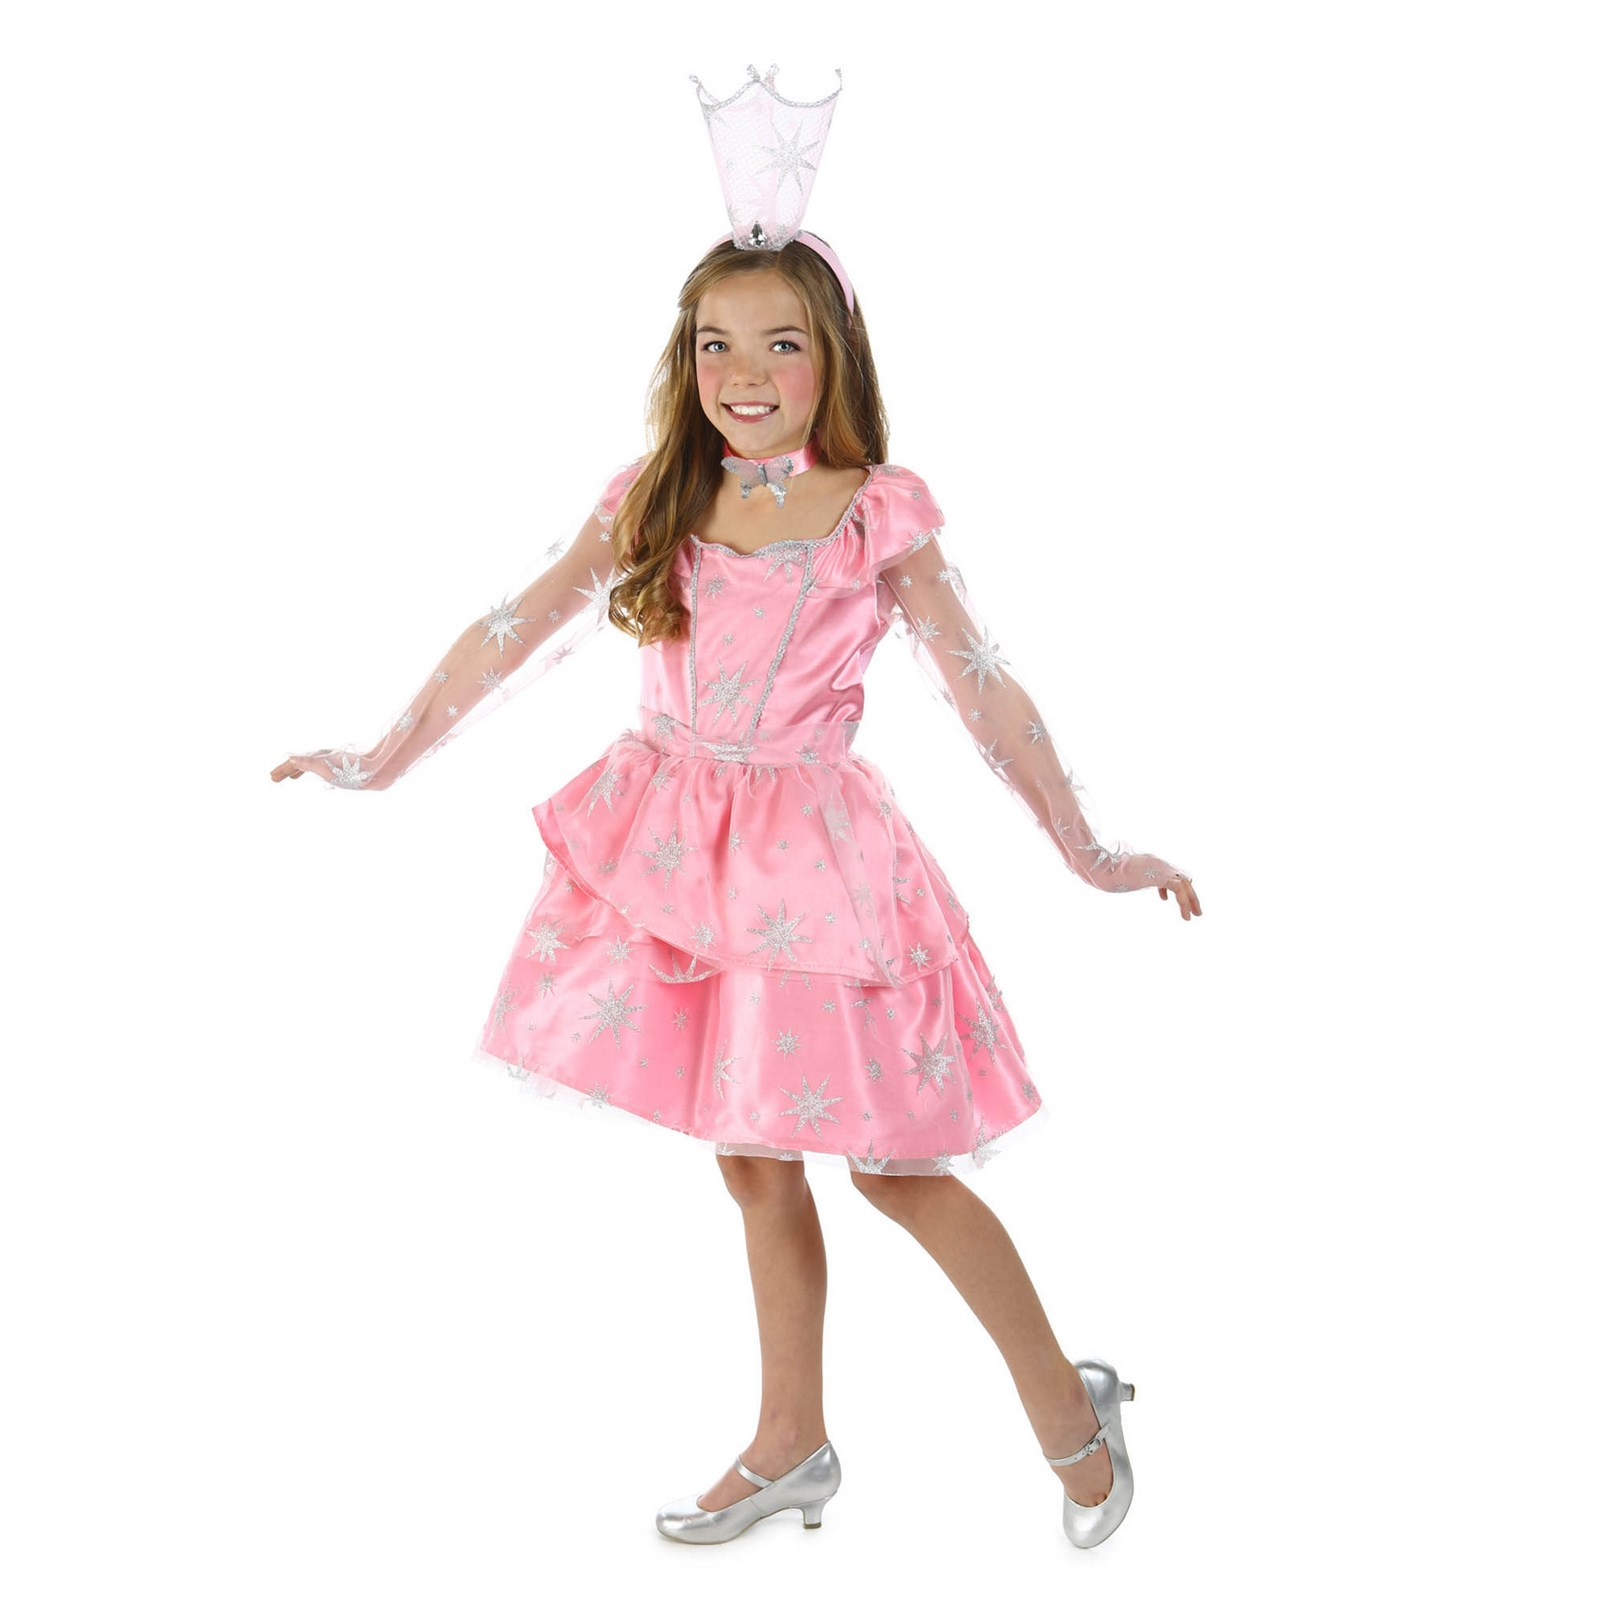 Sassy Girls The Wizard Of Oz Glinda Costume by PRIN5500